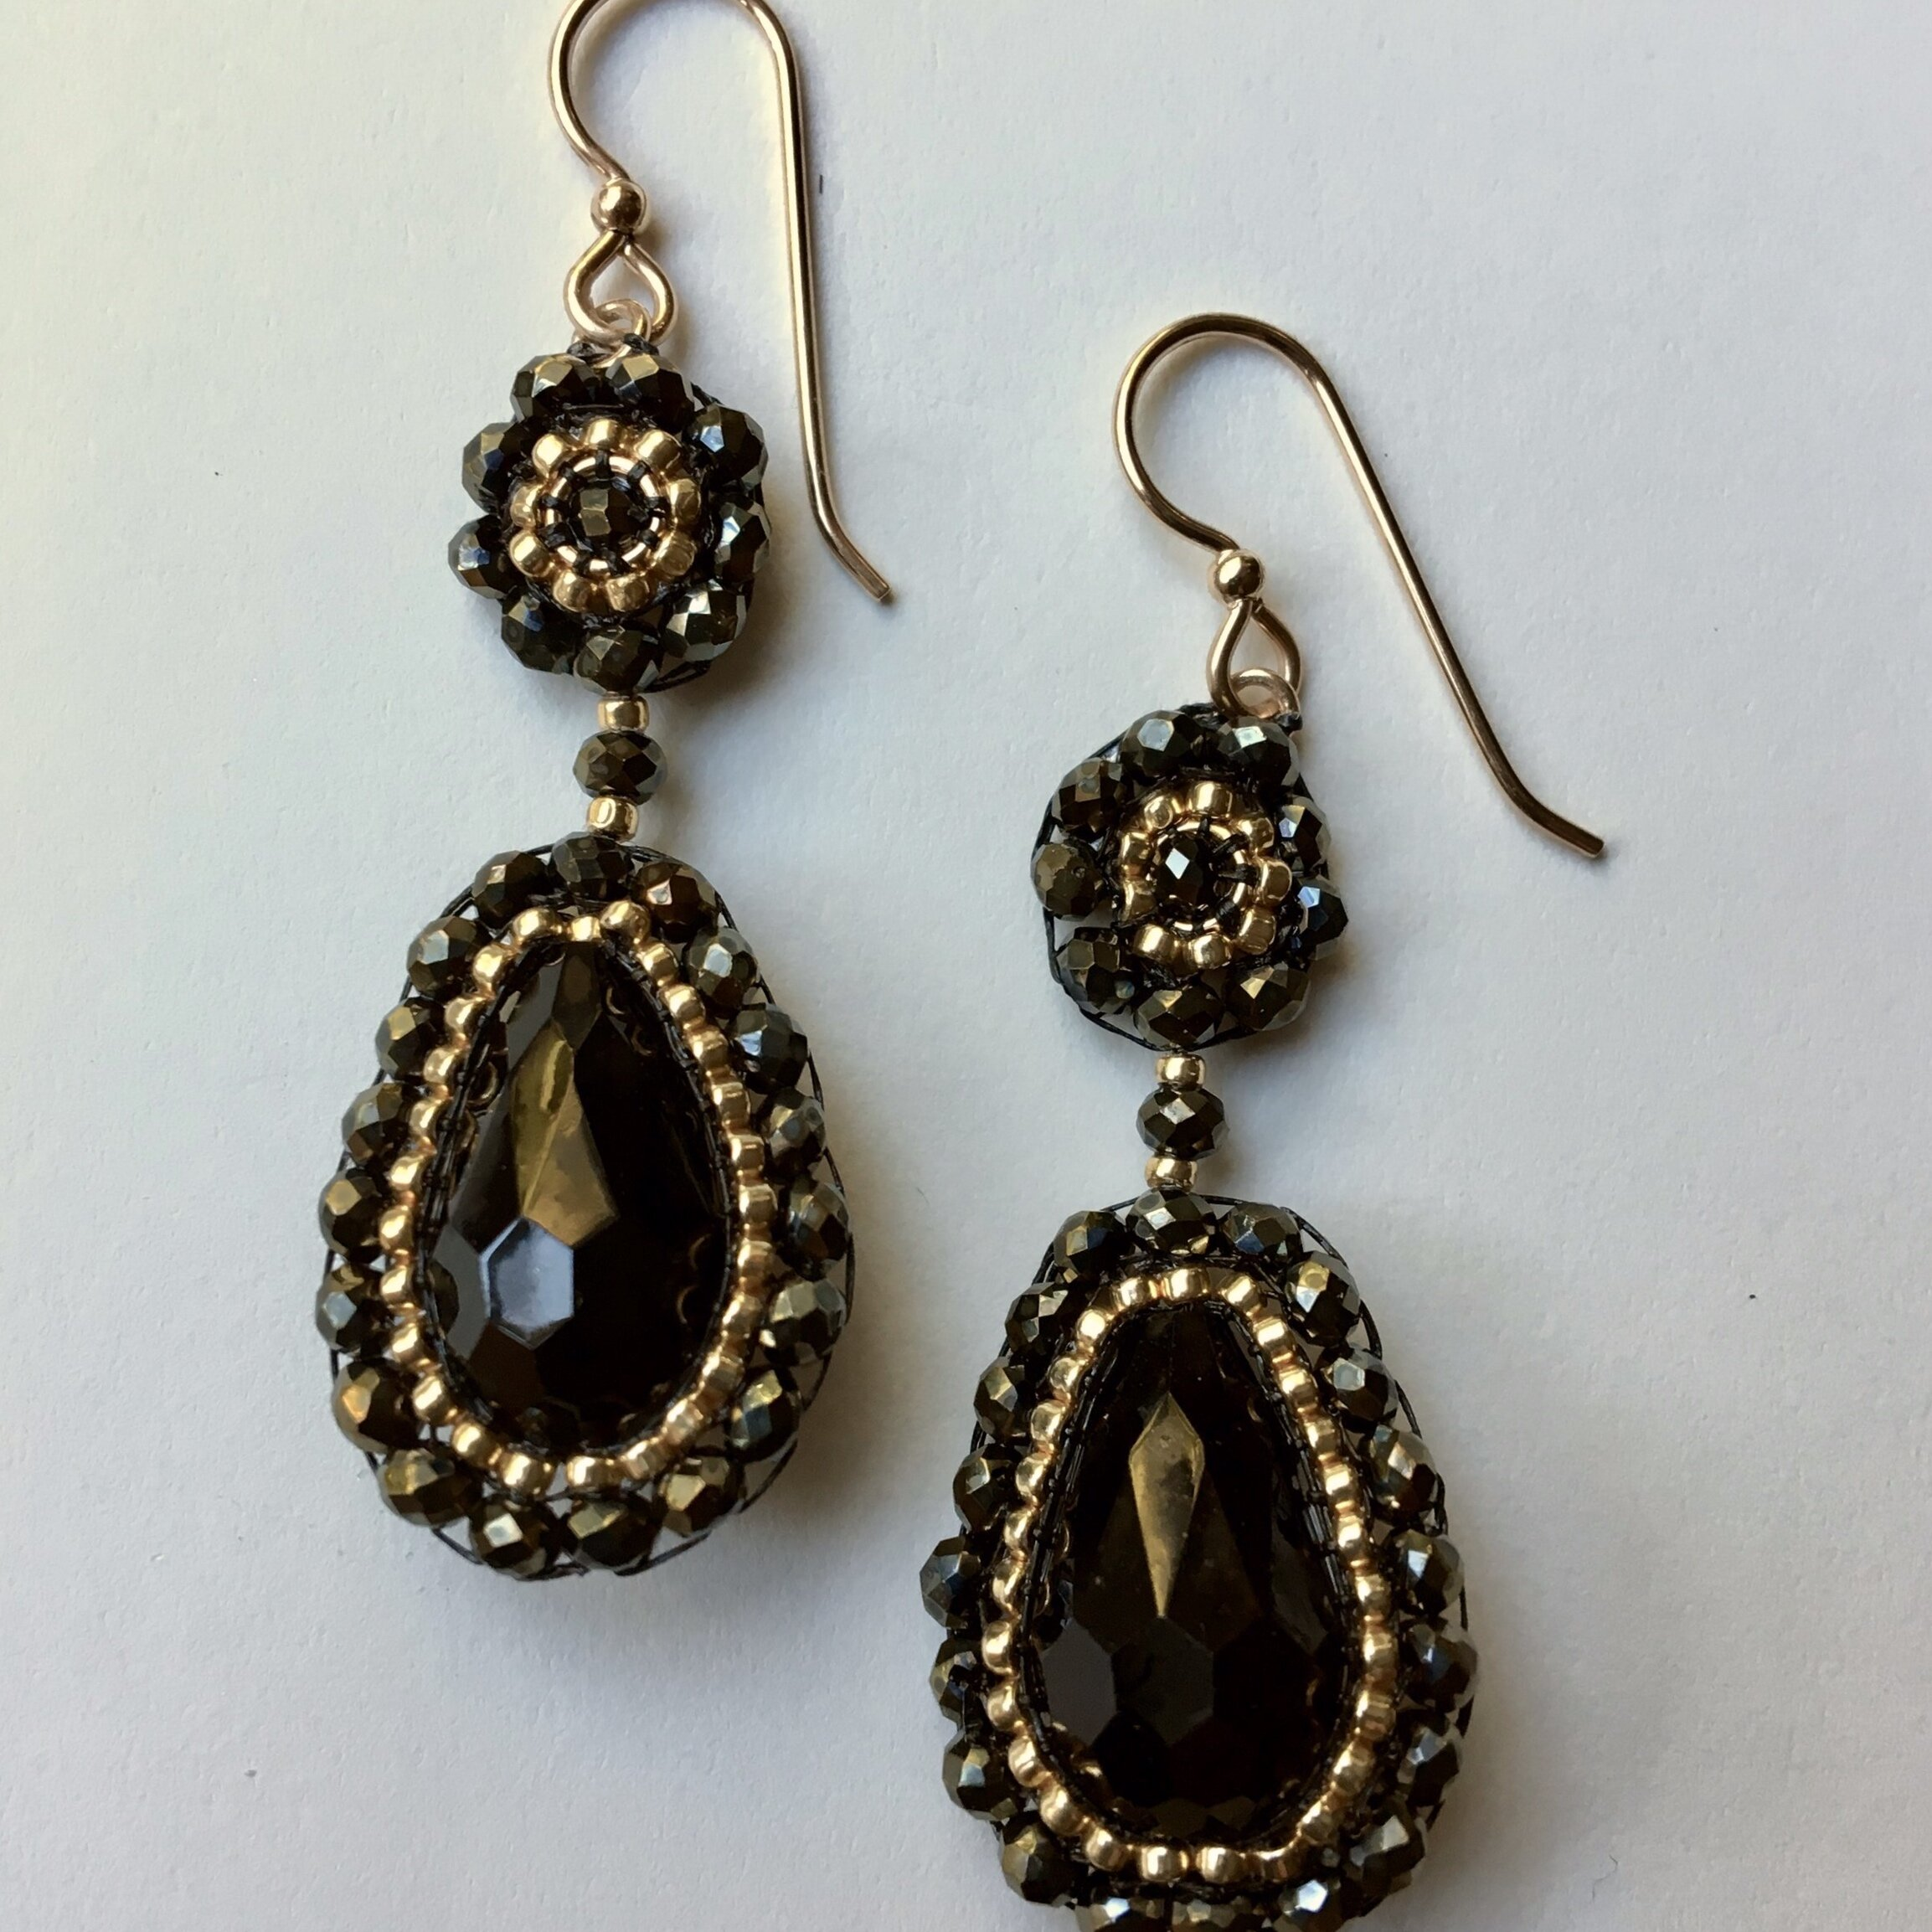 NEW! Jet Crystal with Gold Drop Earrings